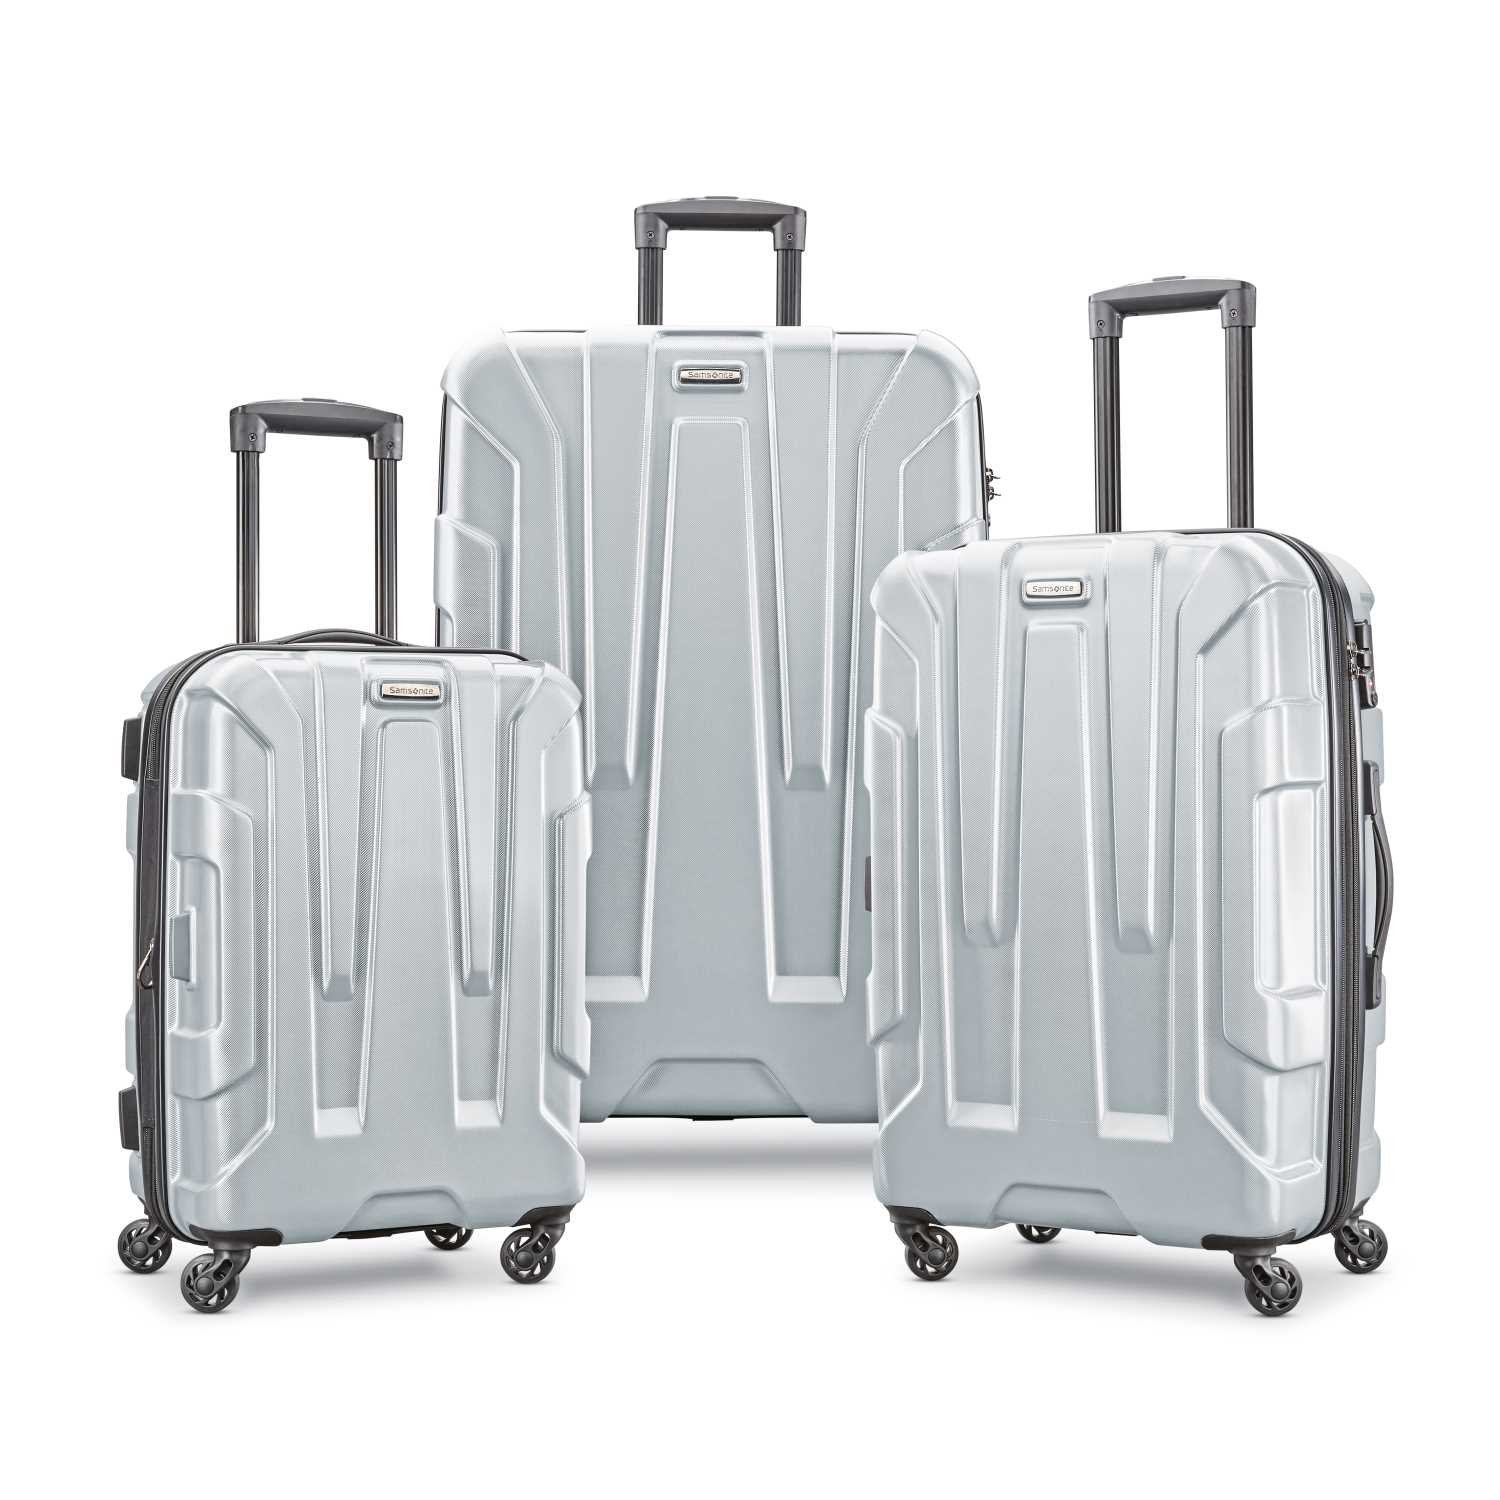 Samsonite Centric Expandable Hardside Luggage Set with Spinner Wheels, 20/24/28 Inch, Silver